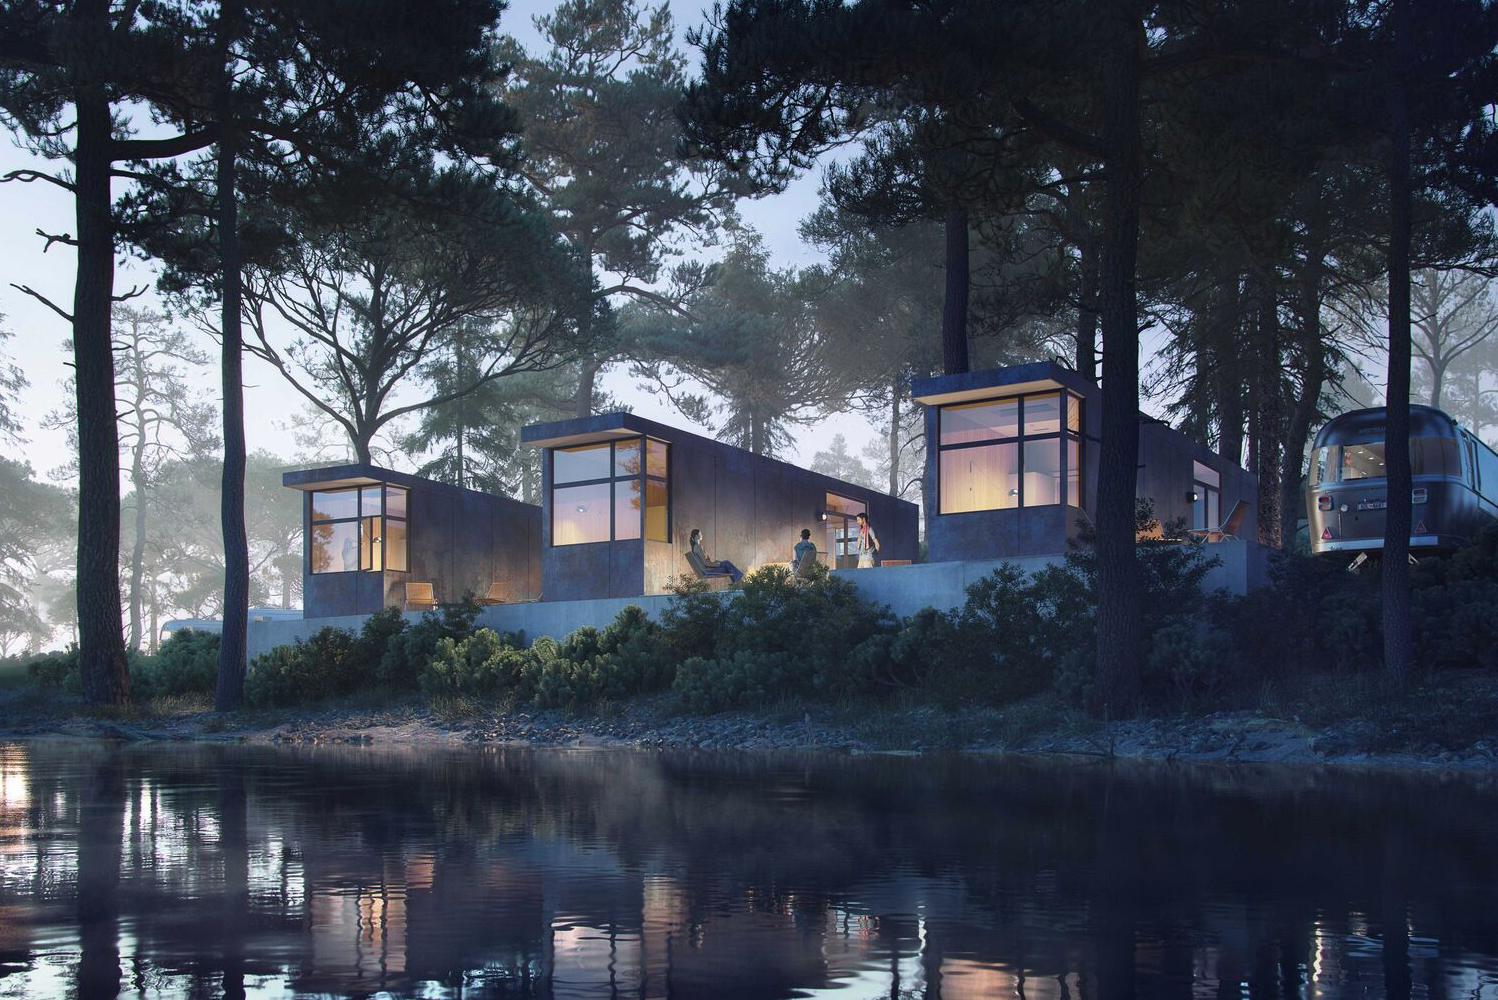 AutoCamp is slated to open its newest property near California's Yosemite National Park in early 2019. Render of AutoCamp suites, design by M-Rad Inc.